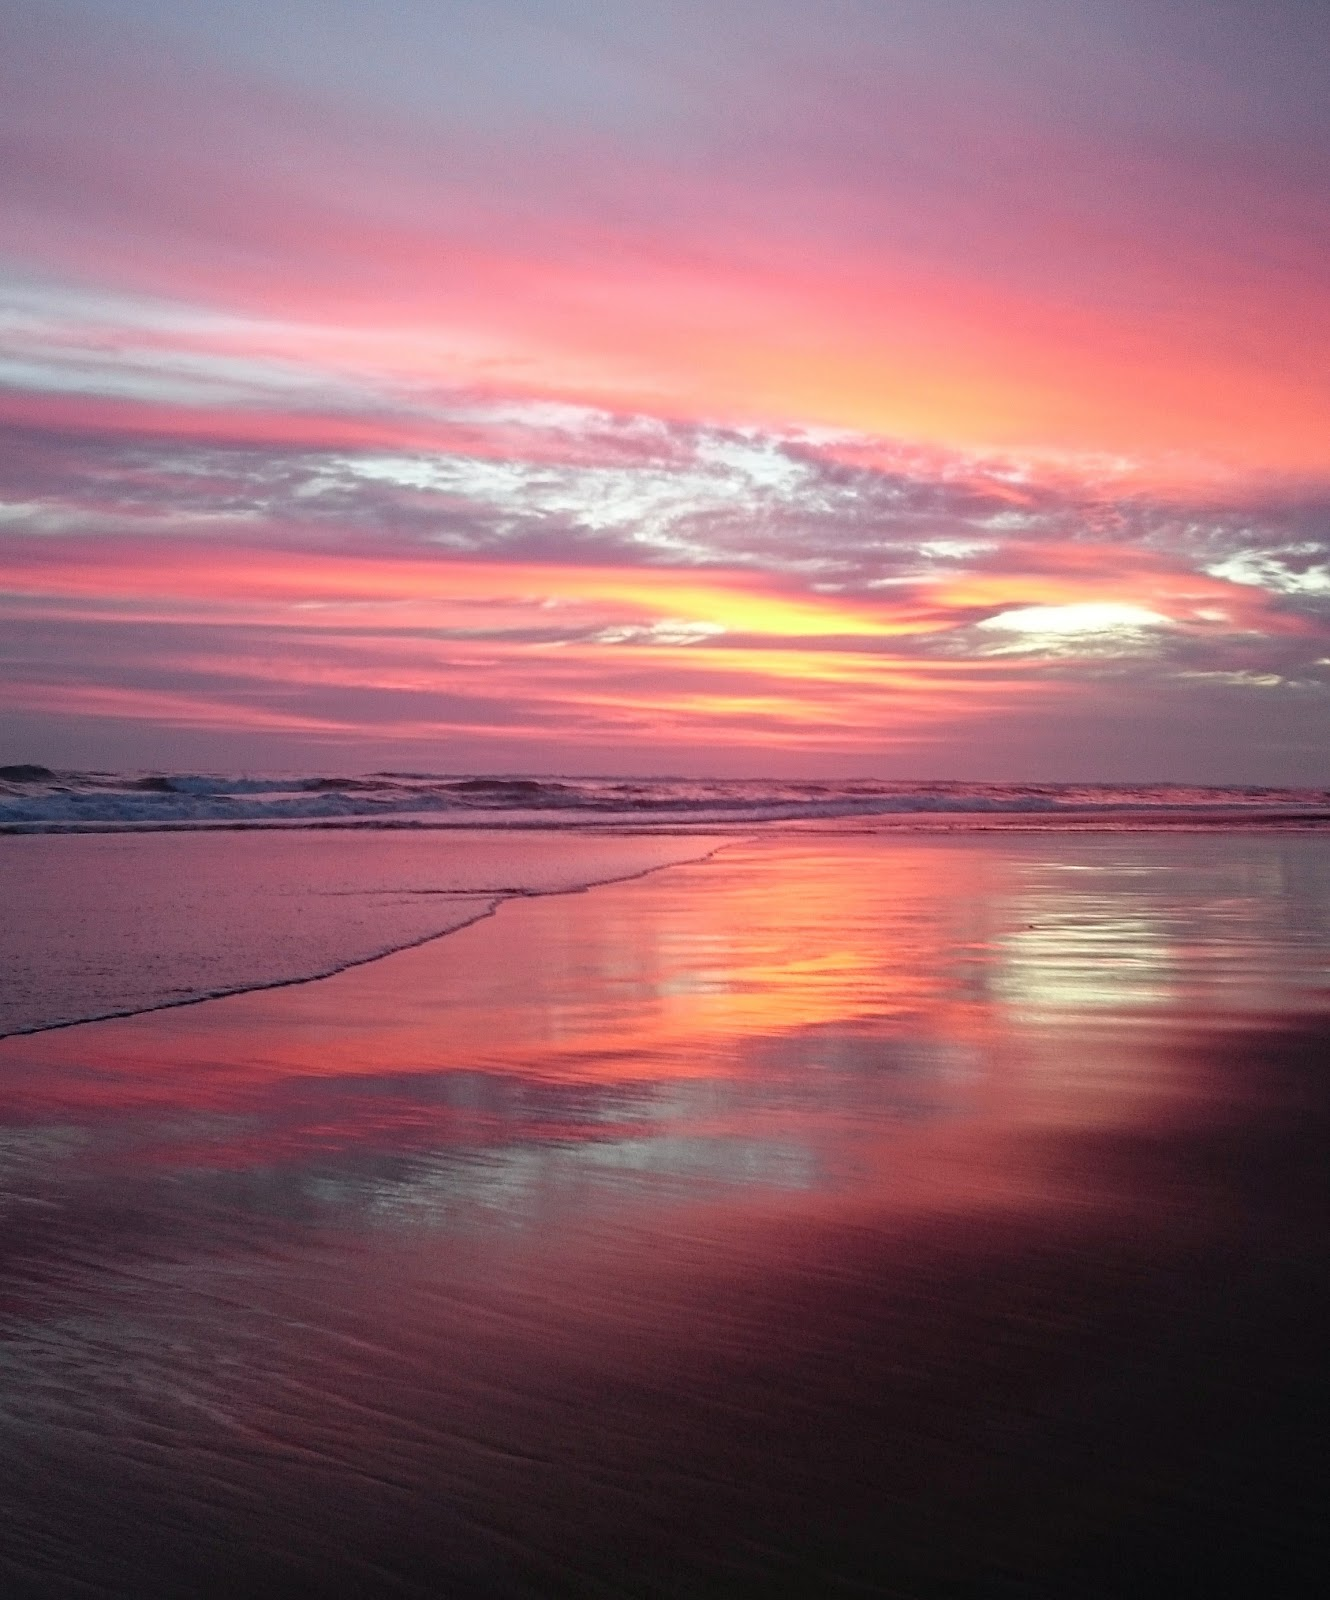 Most beautiful pink sunset in Canggu, Bali, Indonesia